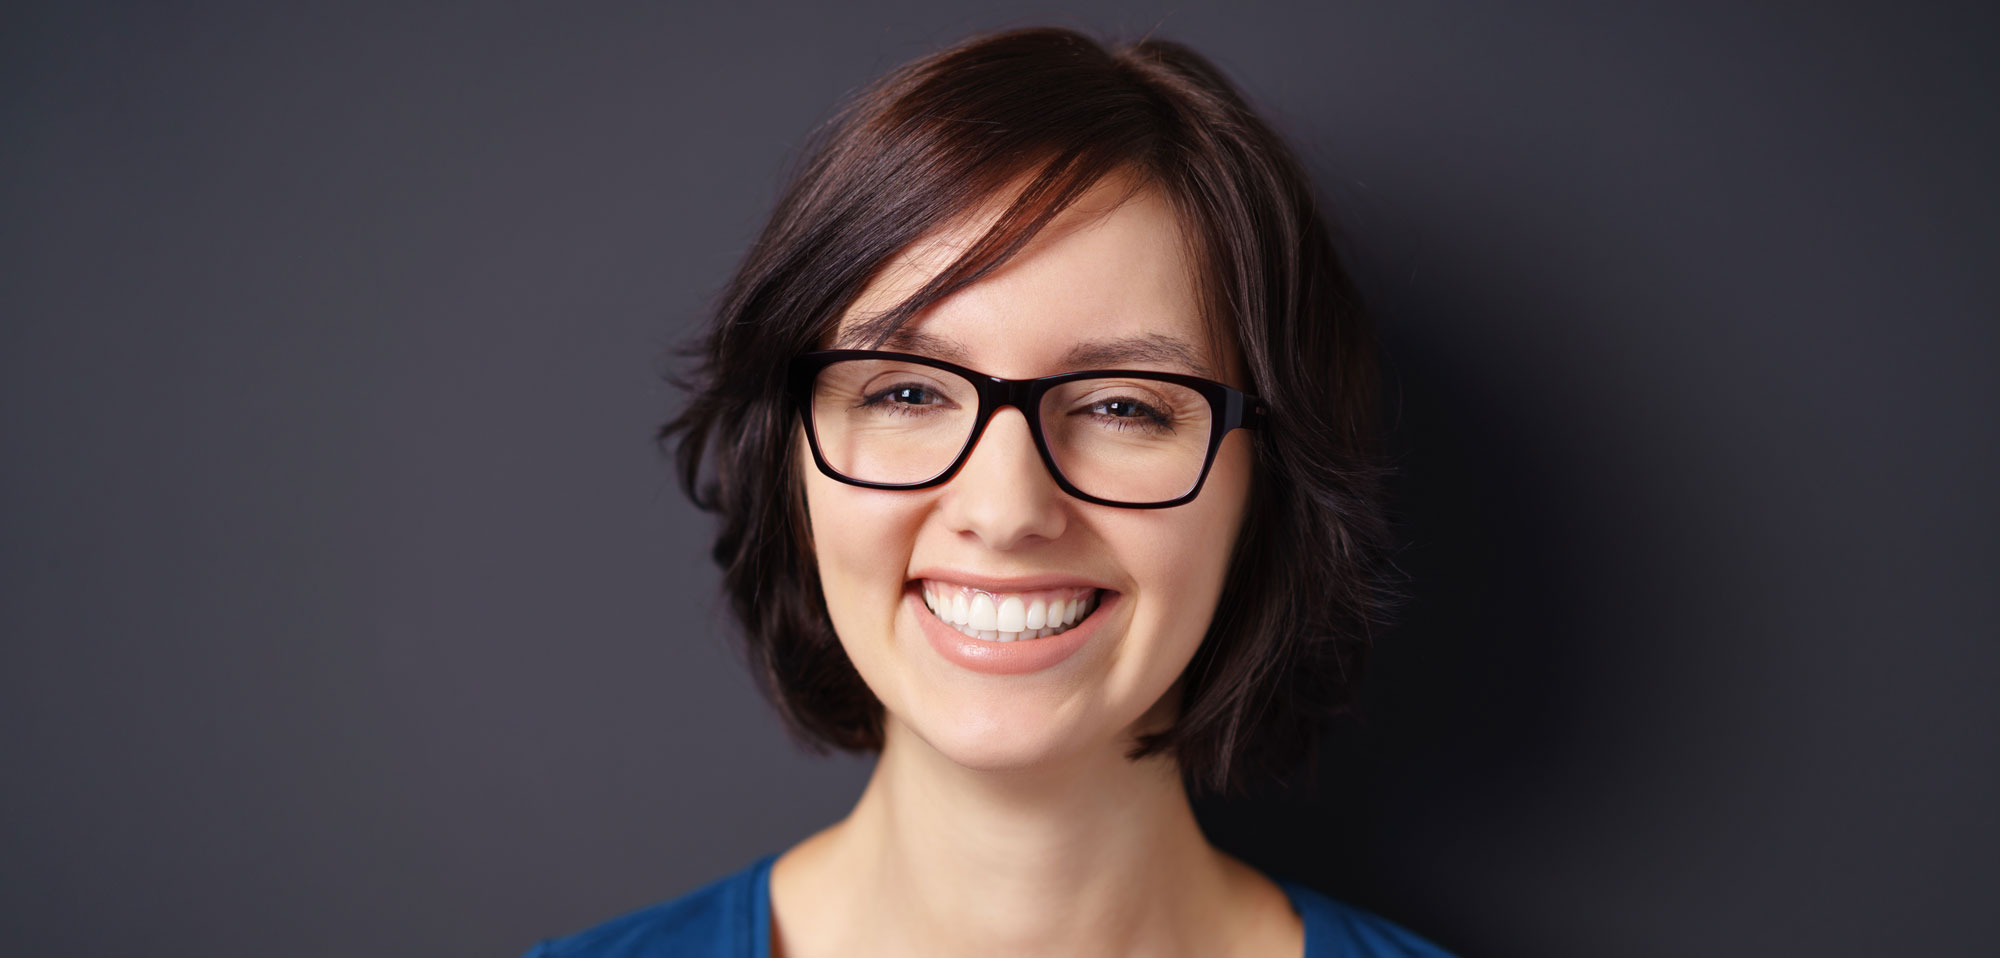 woman smiling with glasses